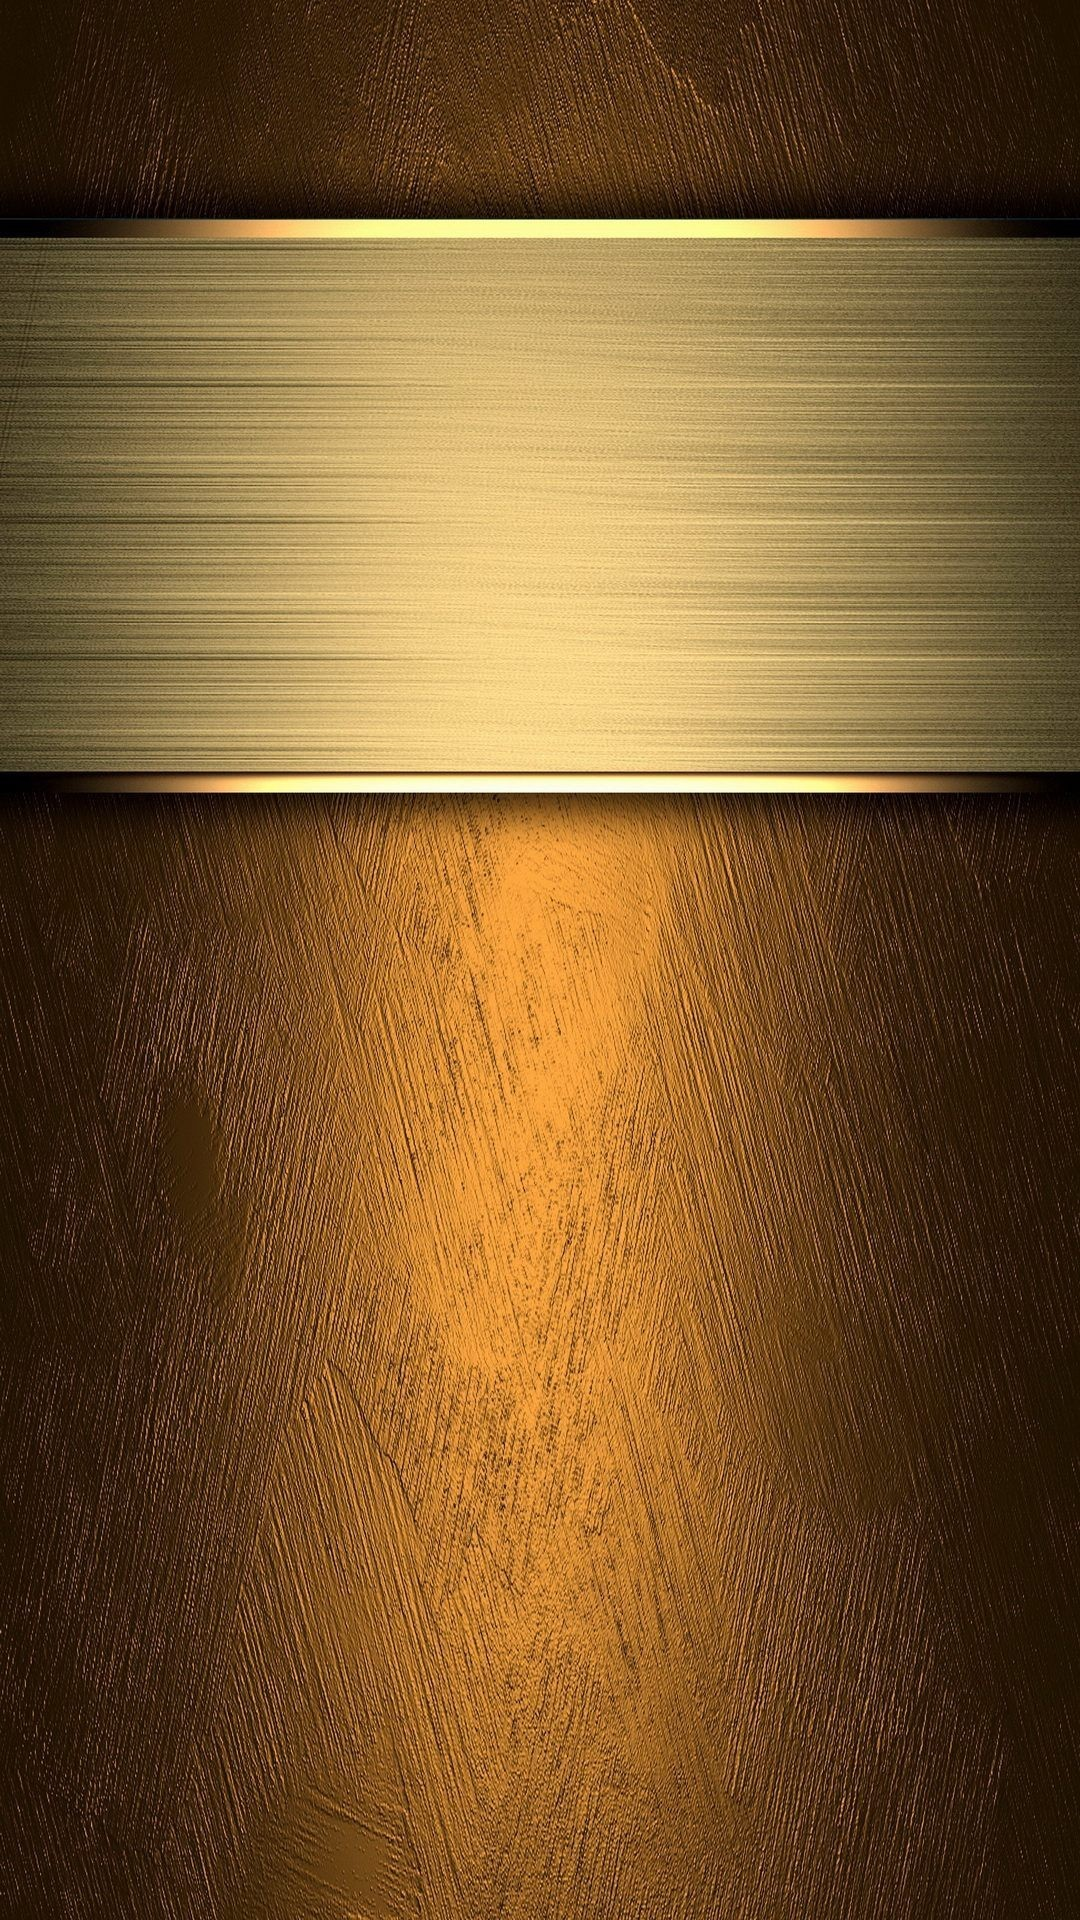 Gold iPhone 6 Plus Wallpapers – abstract, background iPhone 6 Plus .